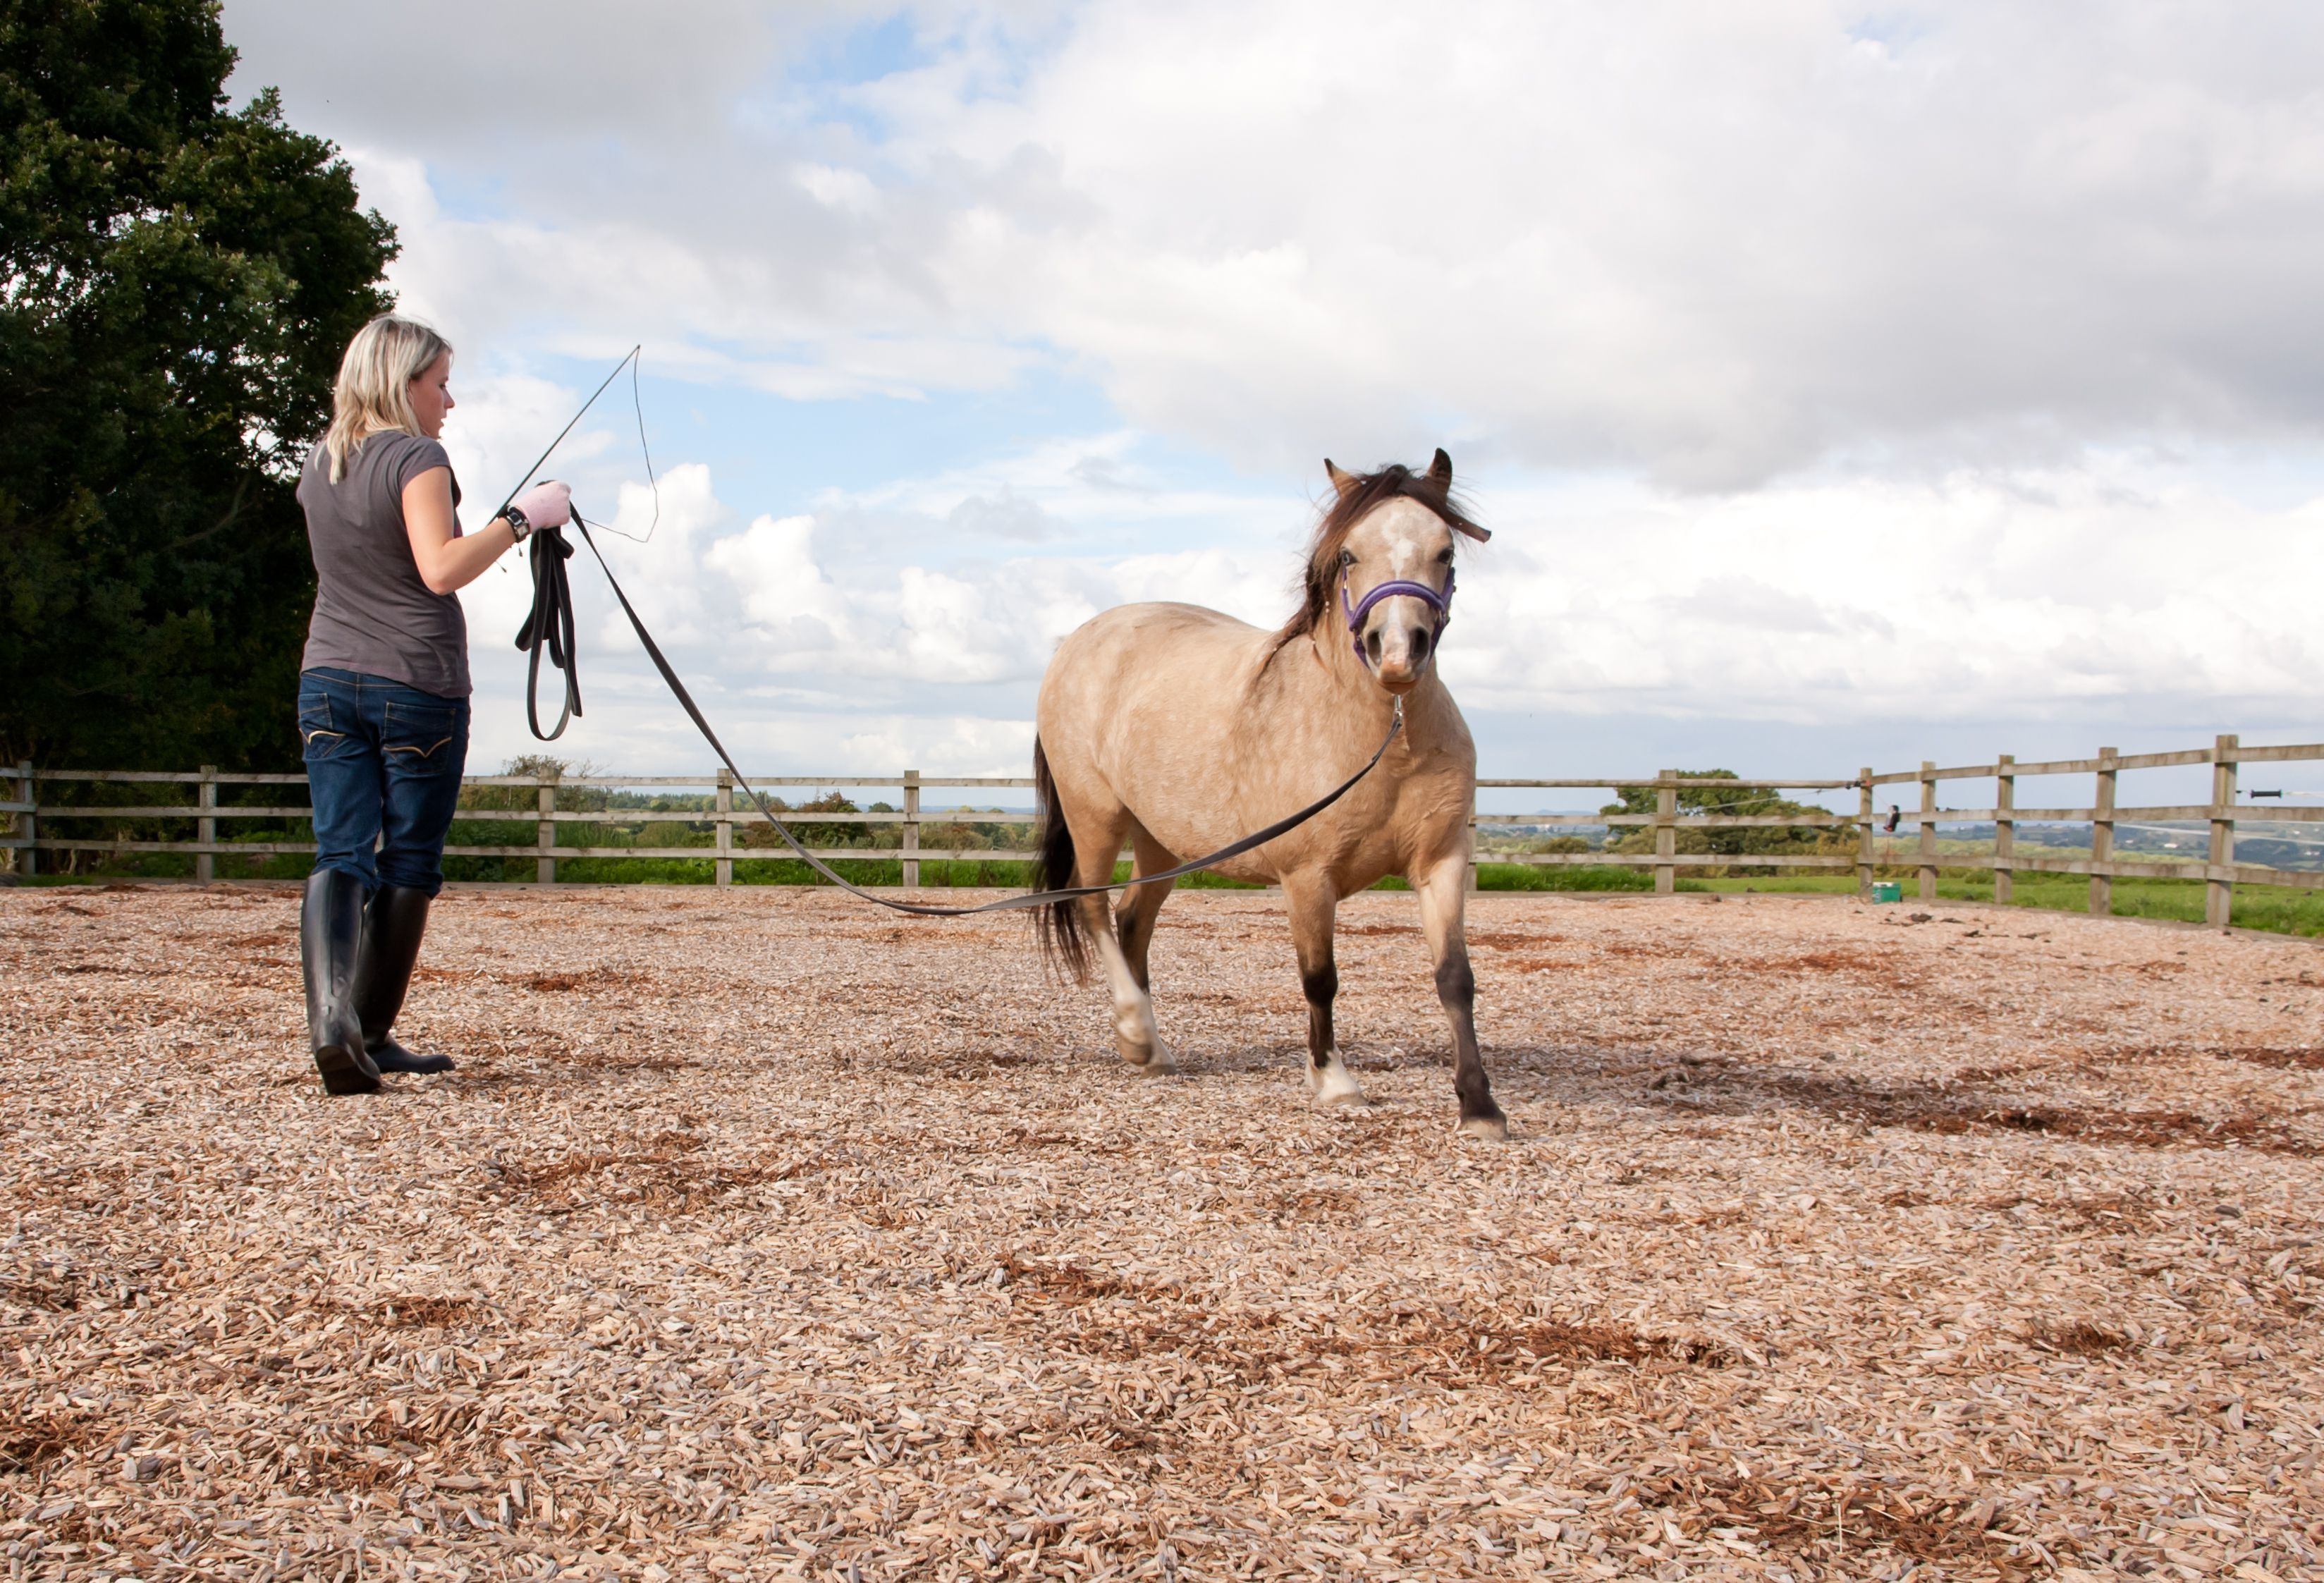 A horse trainer holding a whip instructs a young horse